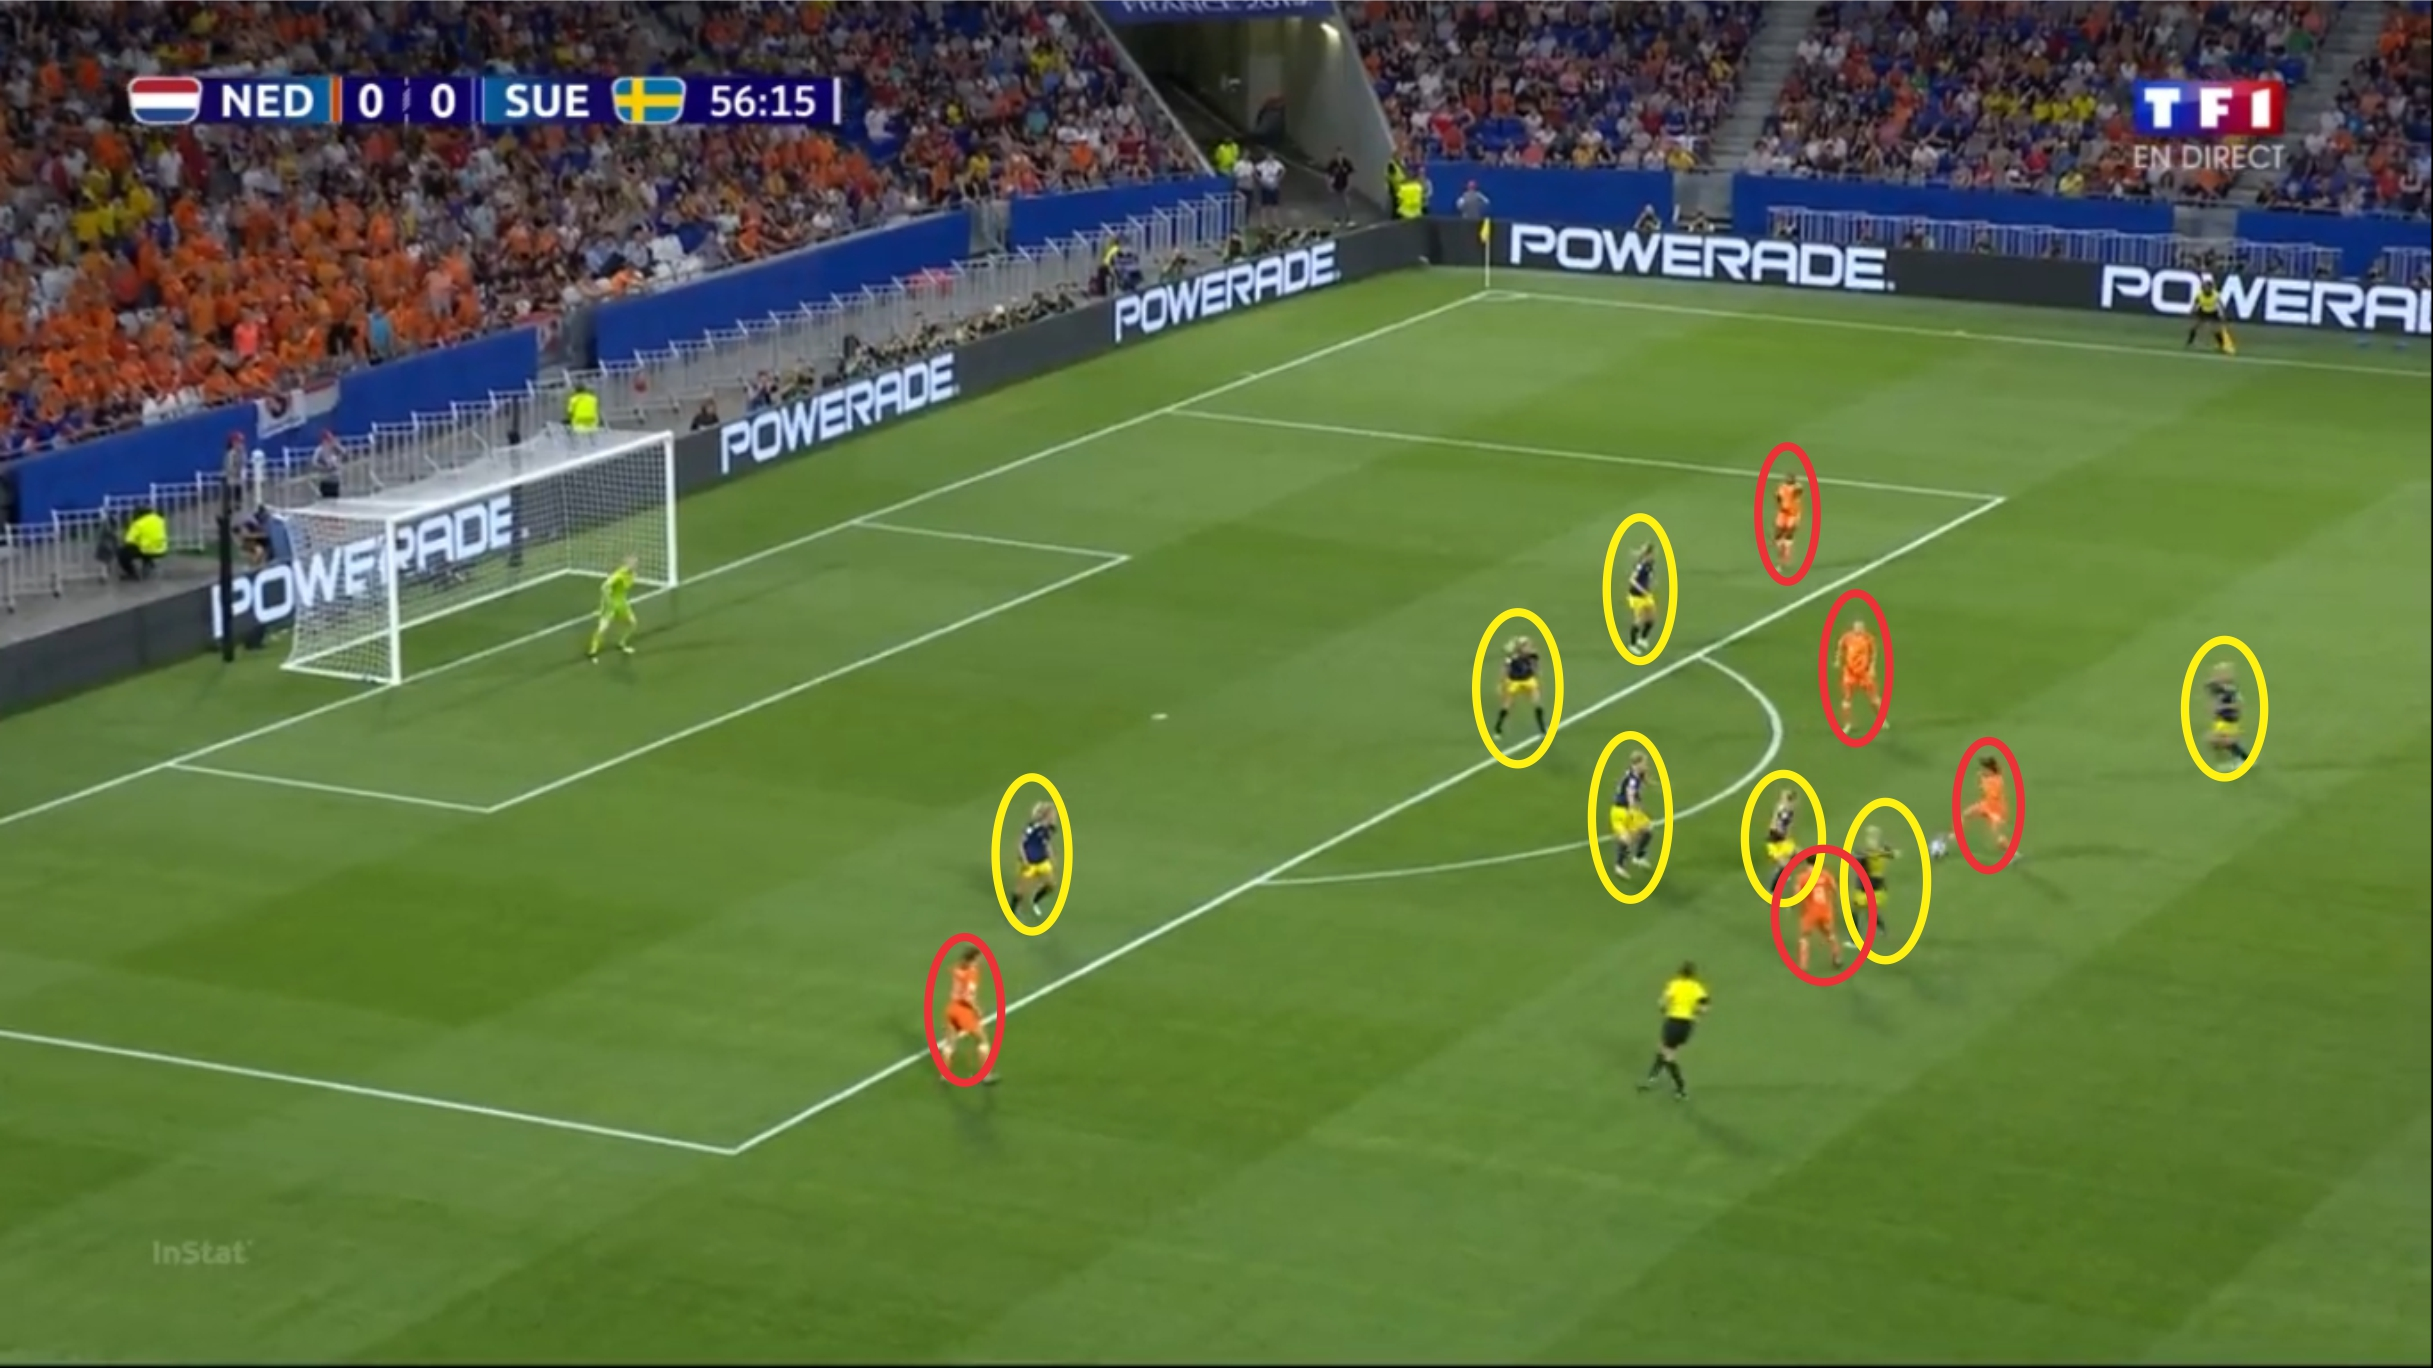 FIFA Women's World Cup 2019: England vs Sweden - tactical analysis tactics